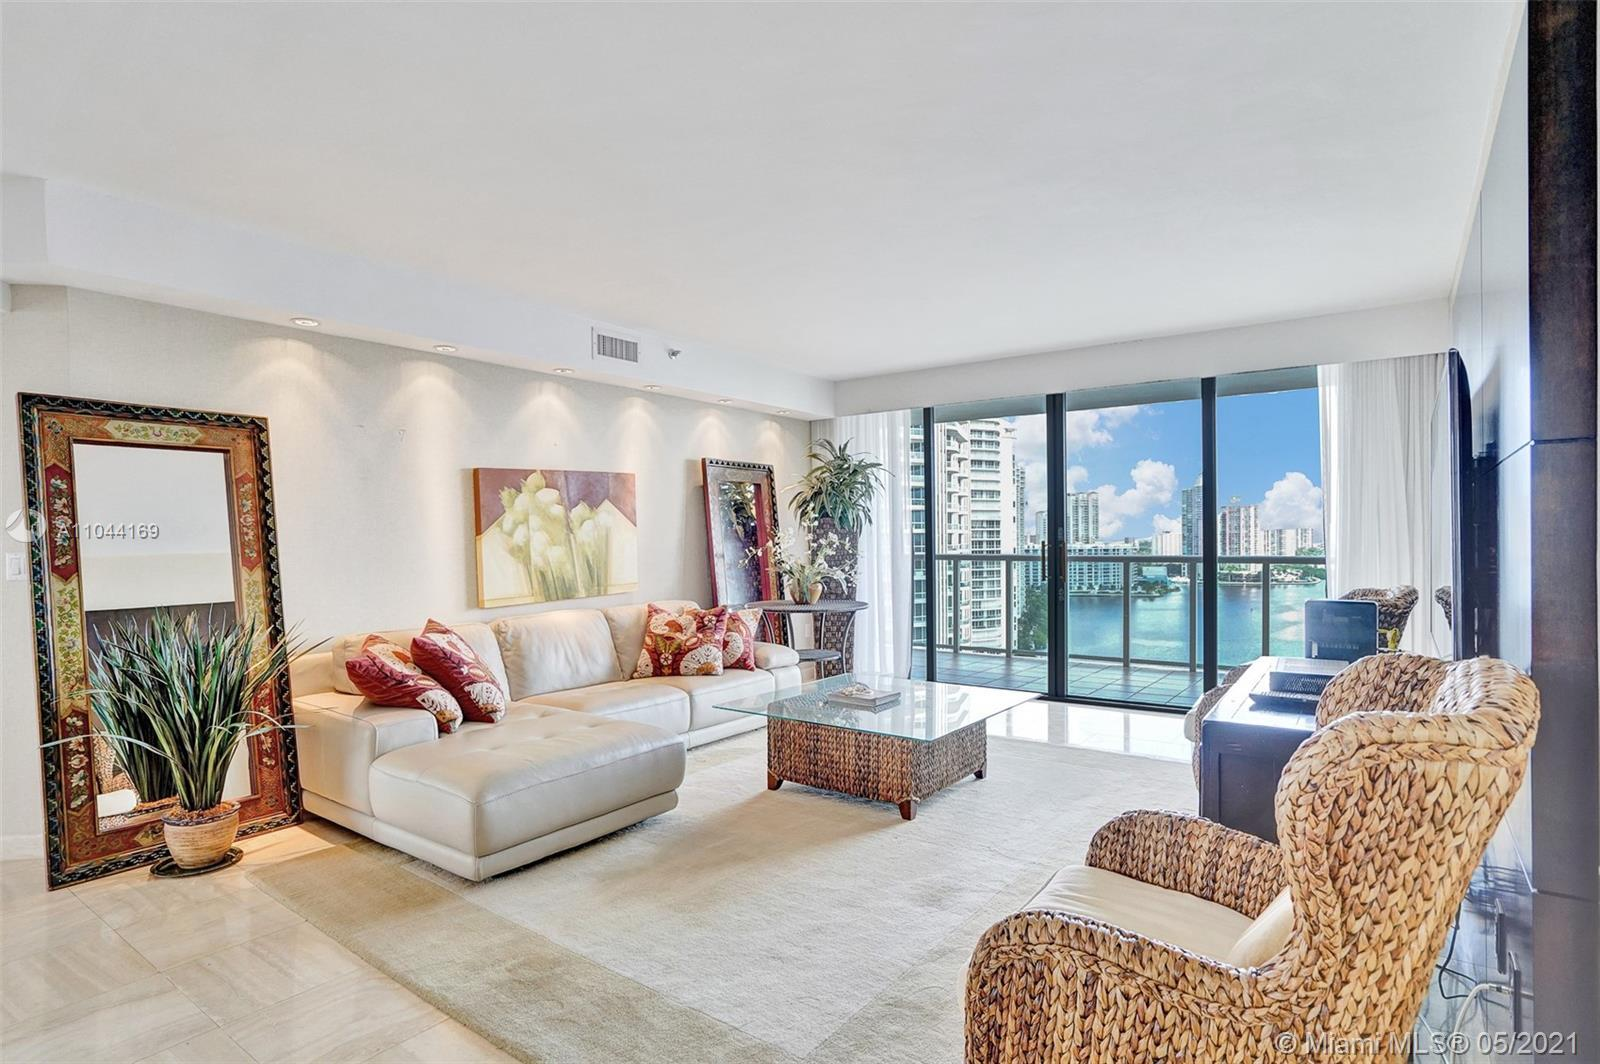 SOUGHT AFTER CONDO WITH GORGEOUS INTRACOASTAL & CITY VIEWS. TRUE 3 BEDROOM, 3 BATHROOM UNIT. WATCH B